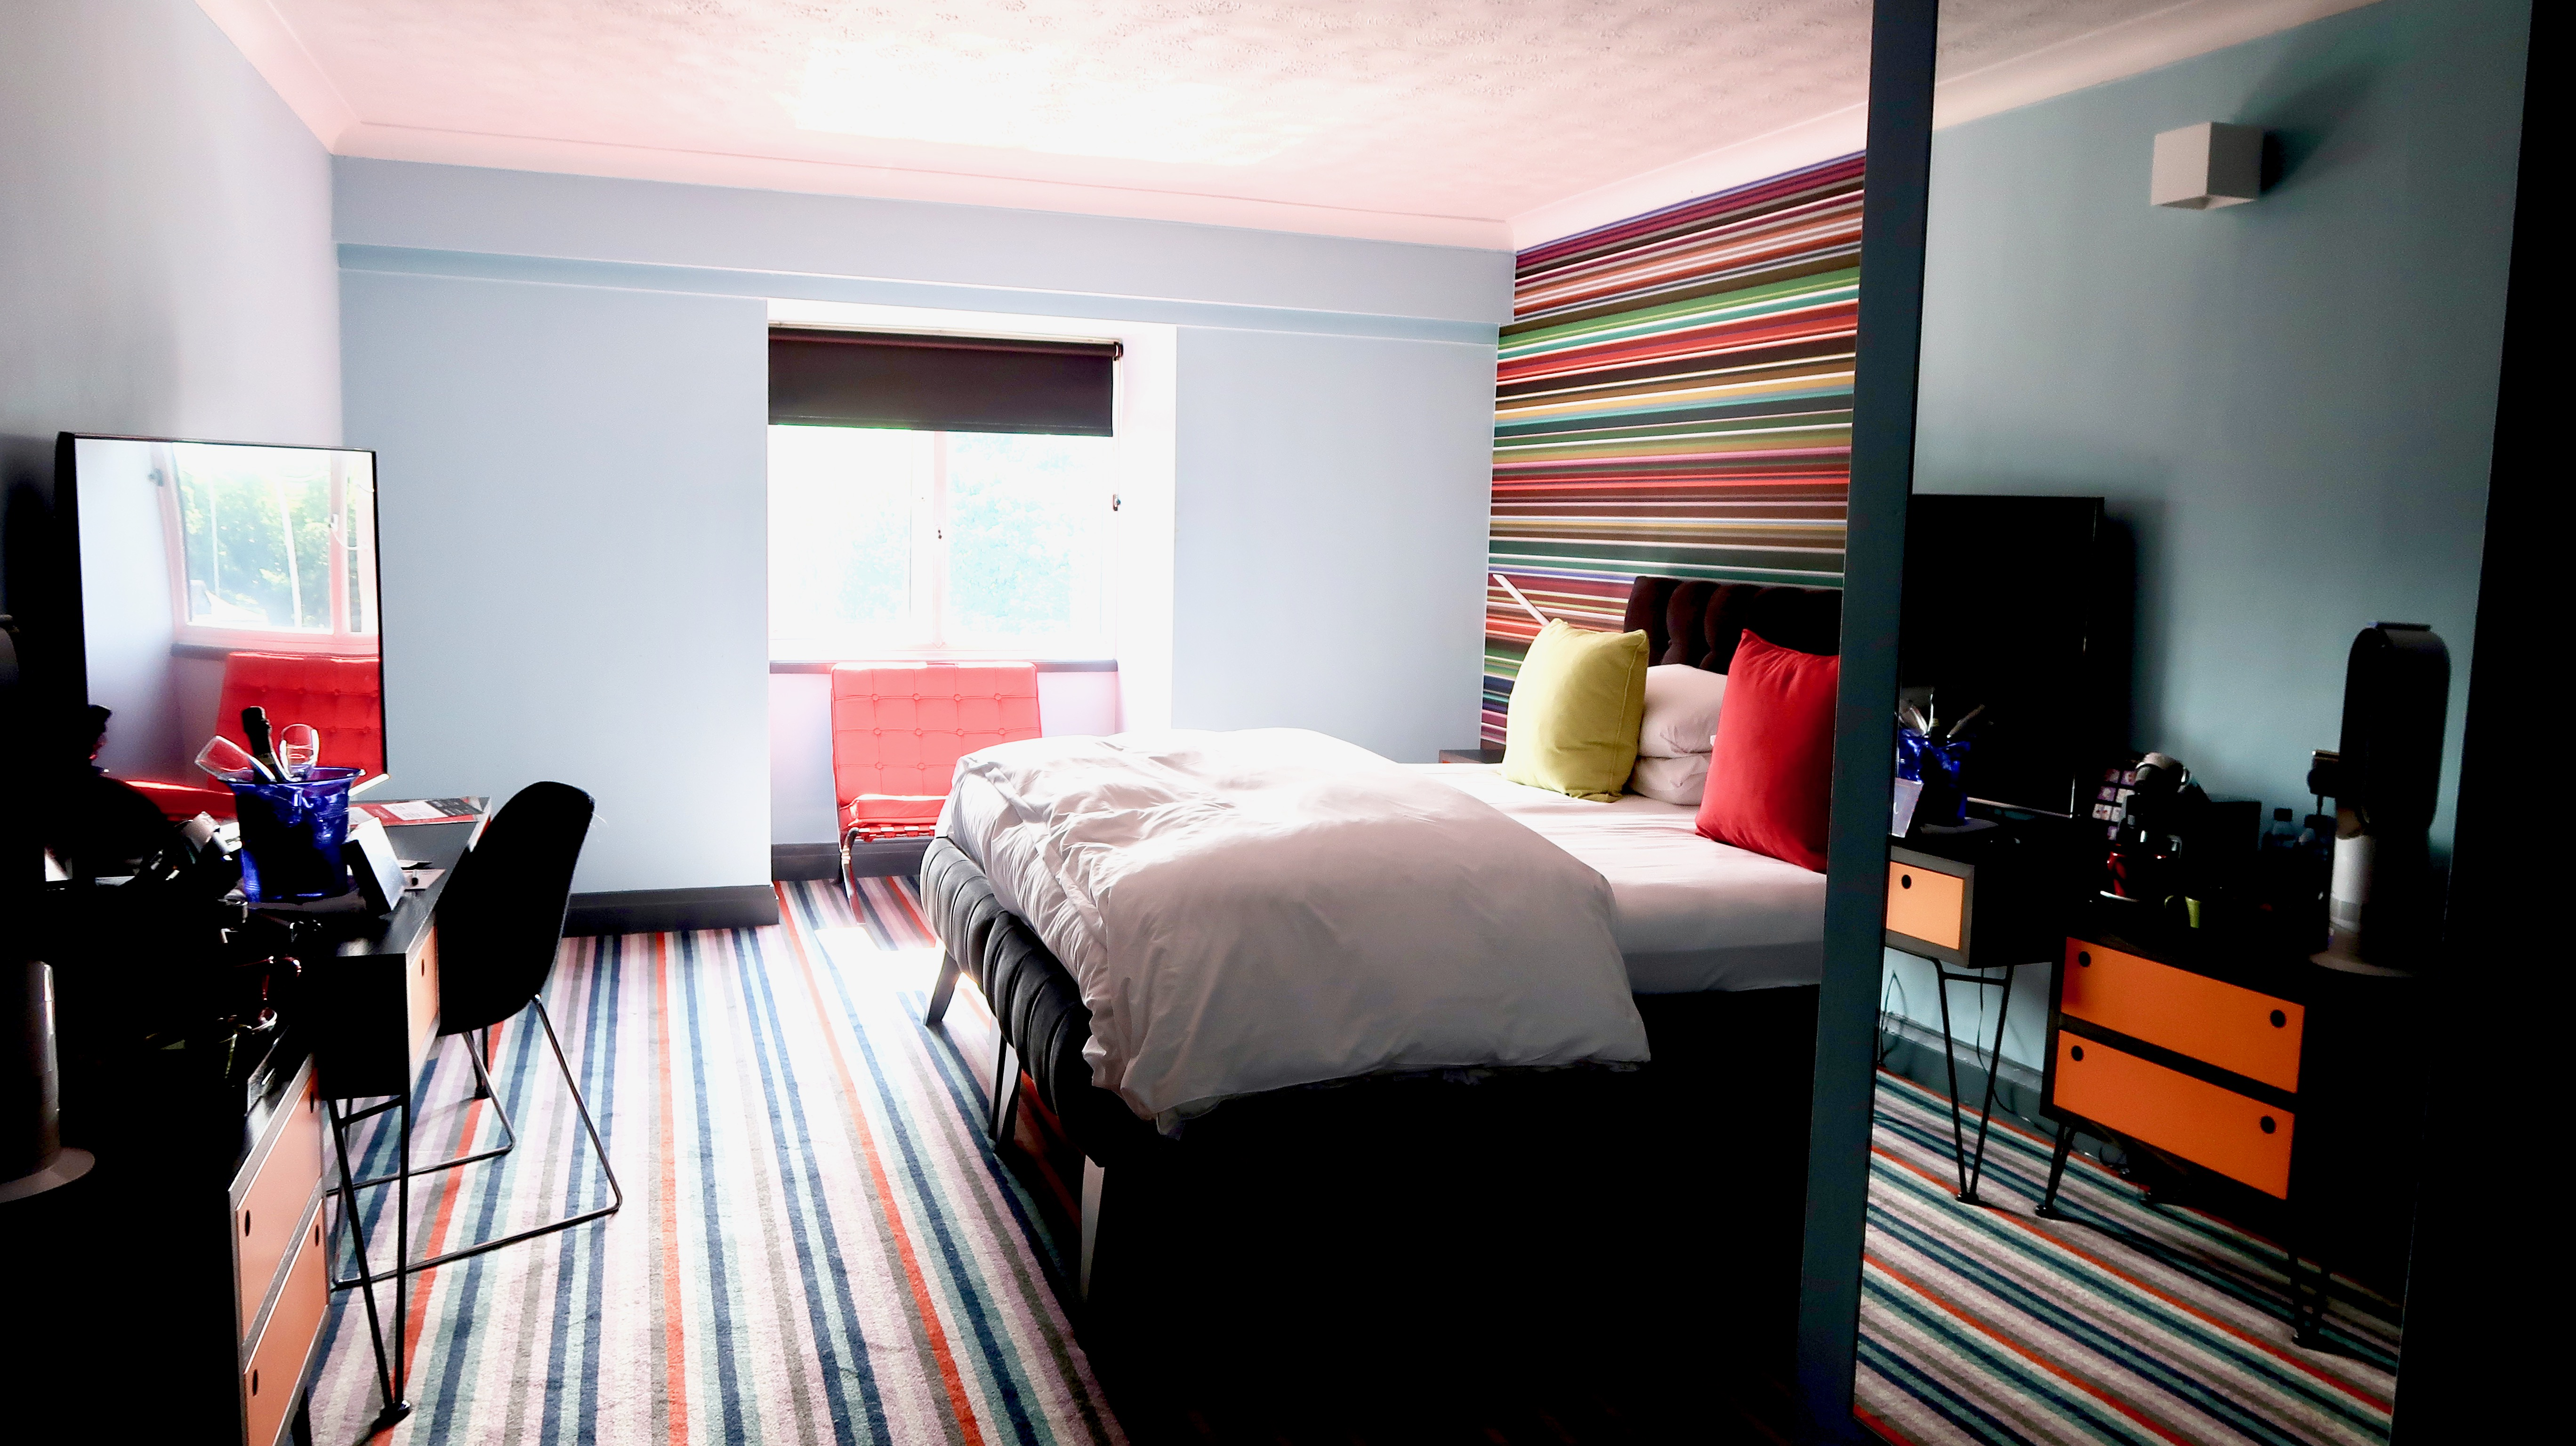 The Village Hotel Tribute Tour   Hotels in The Wirral, Liverpool & Chester   Elle Blonde Luxury Lifestyle Destination Blog